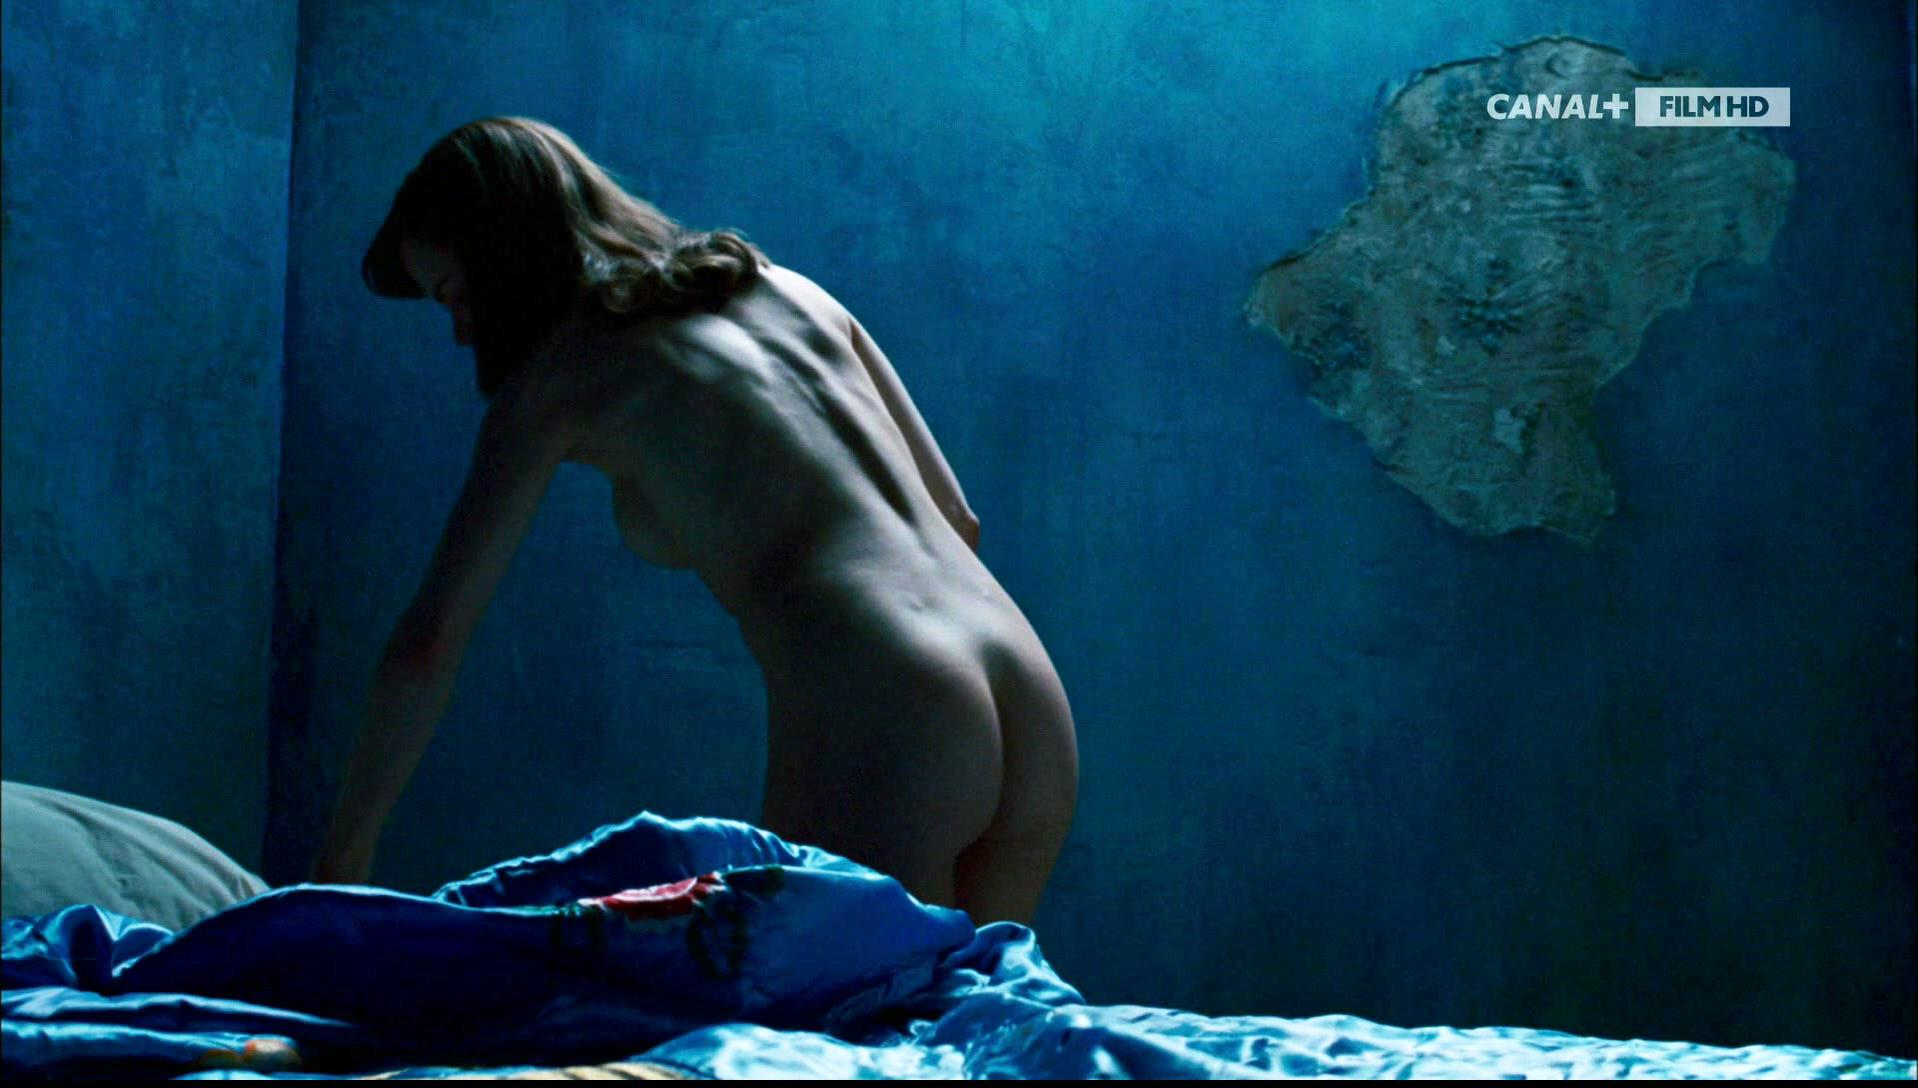 Nicole Kidman nude - An Imaginary Portrait of Diane Arbus (2006)